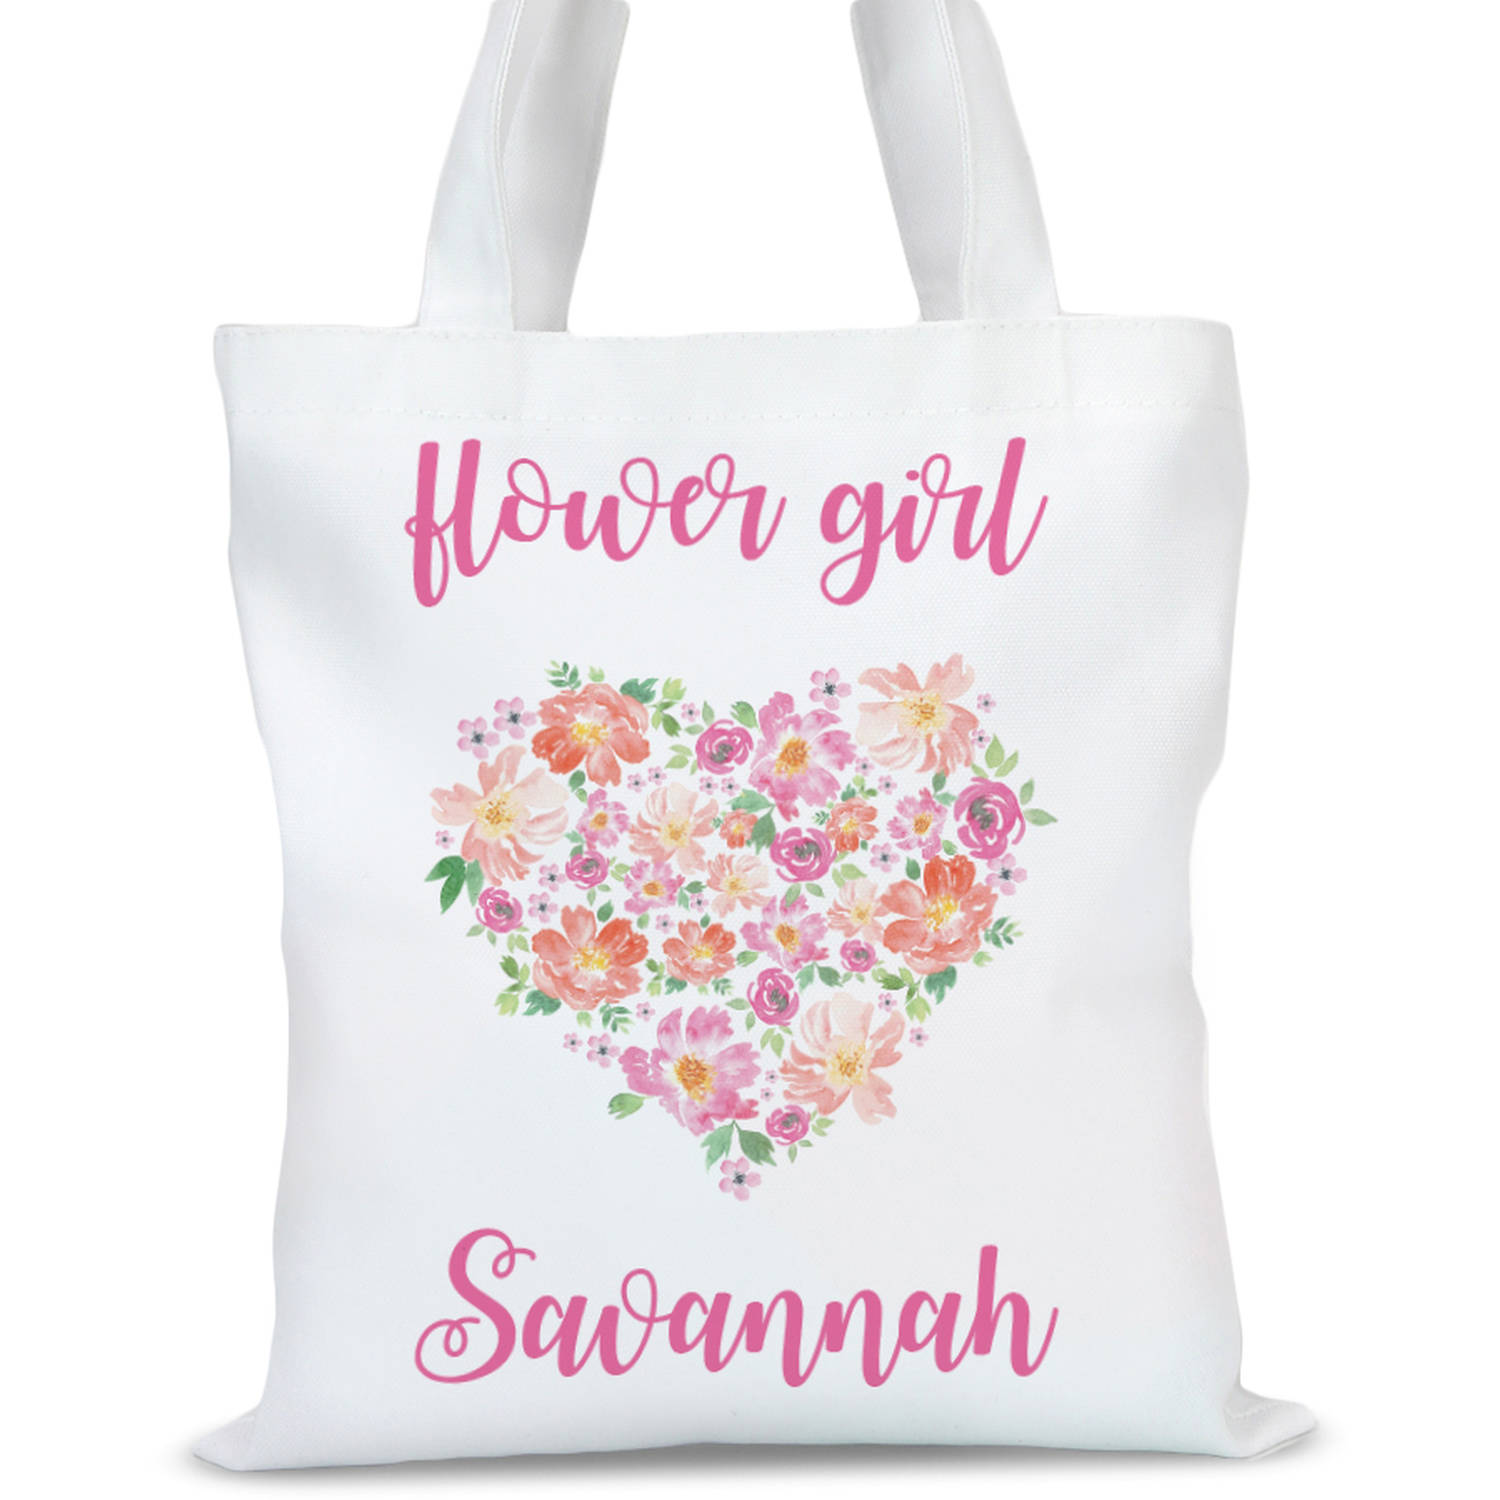 """Flower Girl Personalized Tote Bag, Sizes 11"""" x 11.75"""" and 15"""" x 16.25"""""""